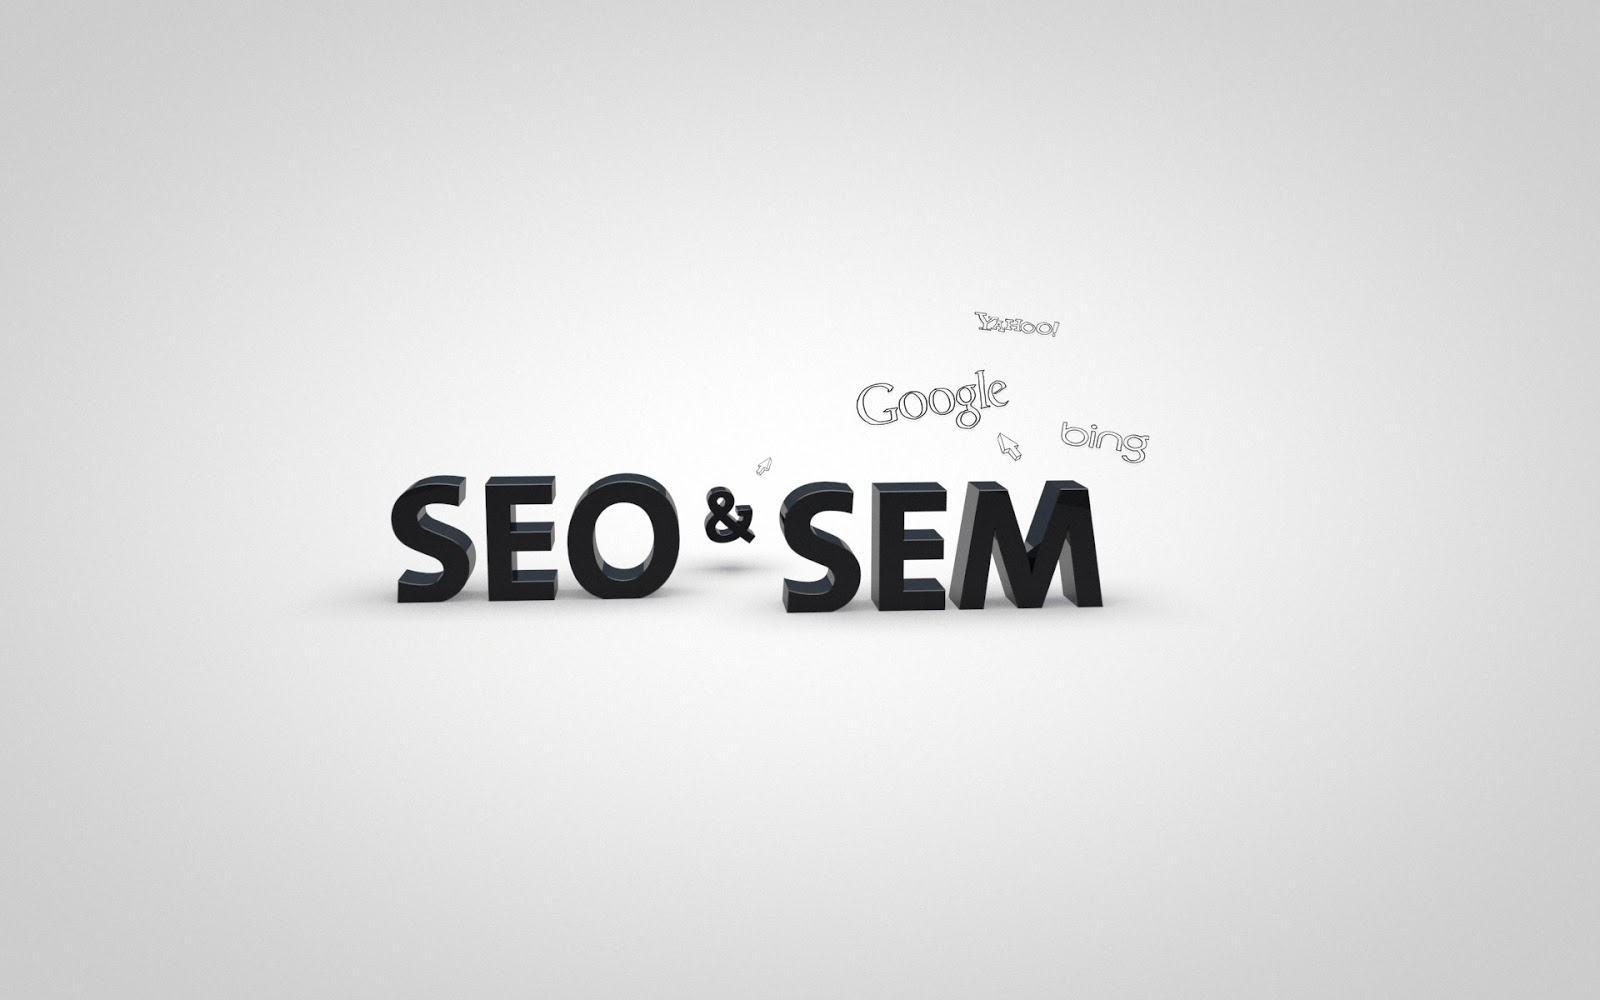 Should you opt for SEO and SEM at the same time?